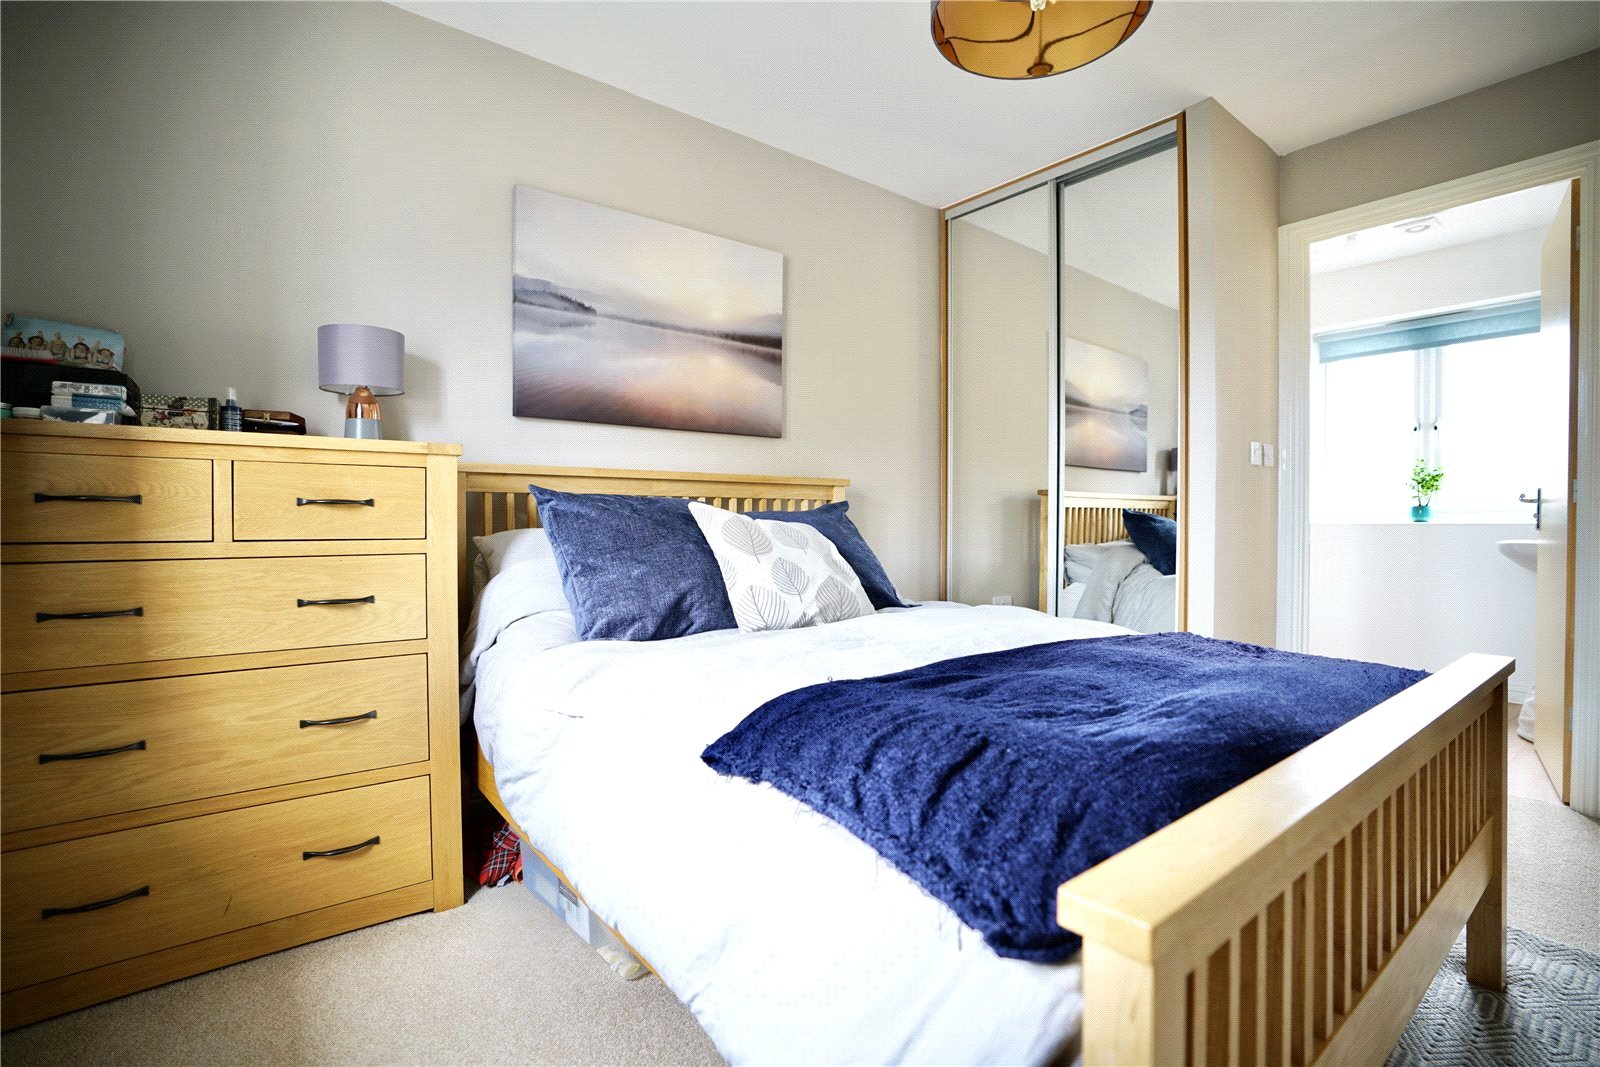 3 bed house for sale in St. Ives, PE27 5DL  - Property Image 14